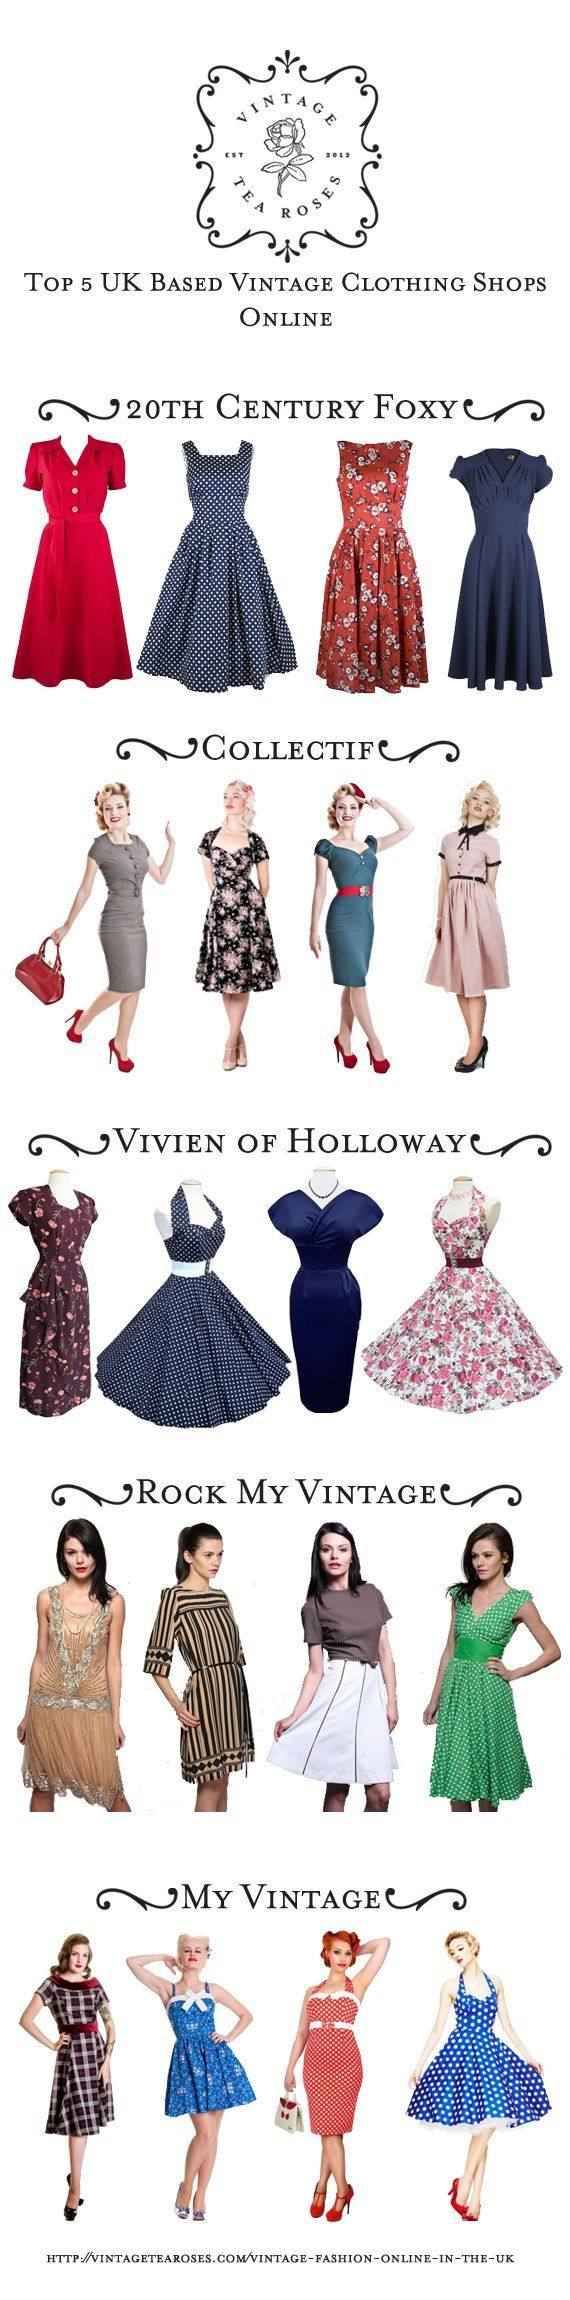 Top Vintage Clothing Shops Online in the UK http://vintagetearoses.com/vintage-fashion-online-in-the-uk/ #vintage #fashion - mens clothing brands, plus size mens clothing, mens sale clothing